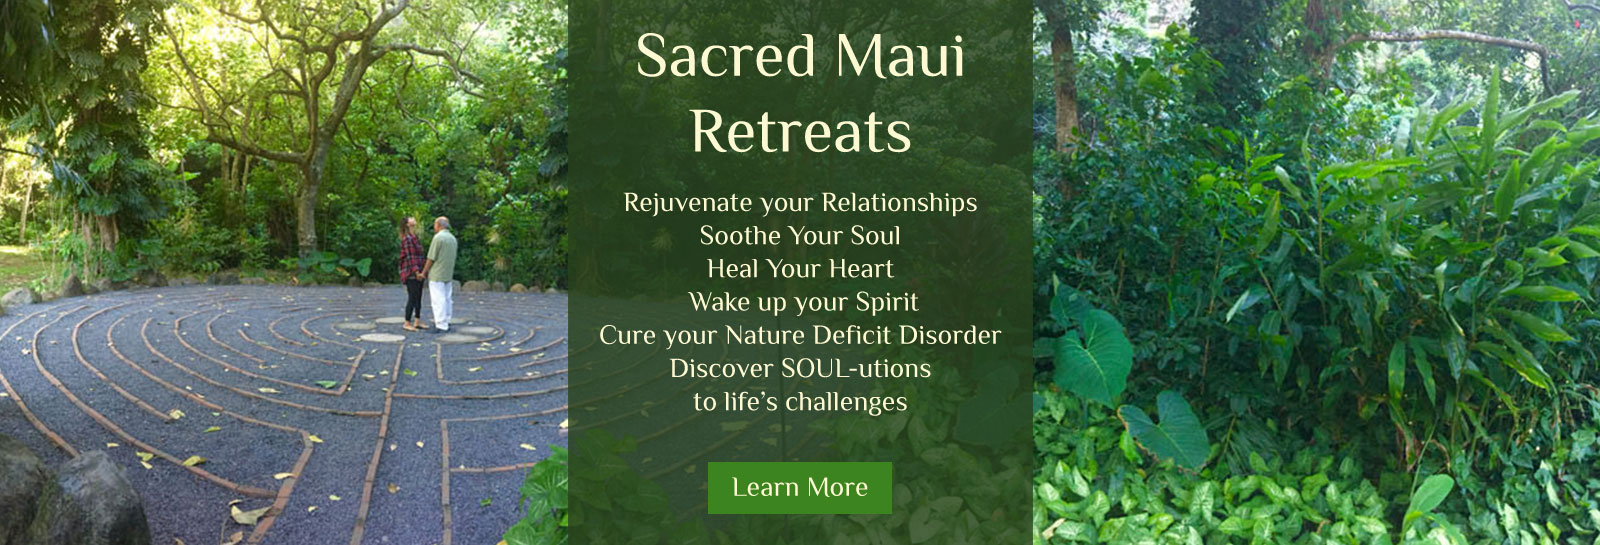 Maui Retreat Topics